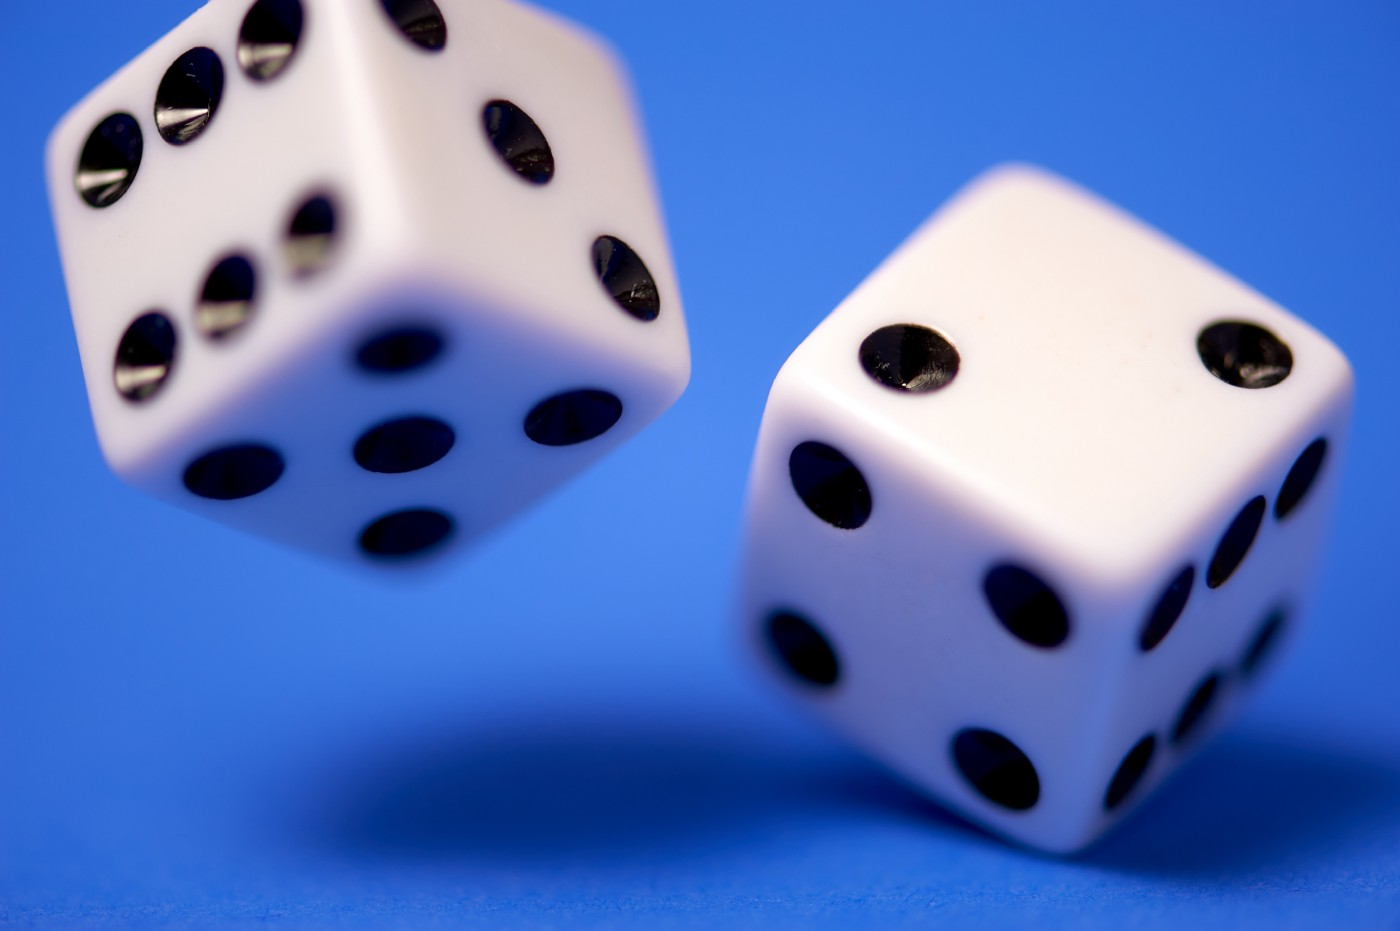 a pair of rolling dice